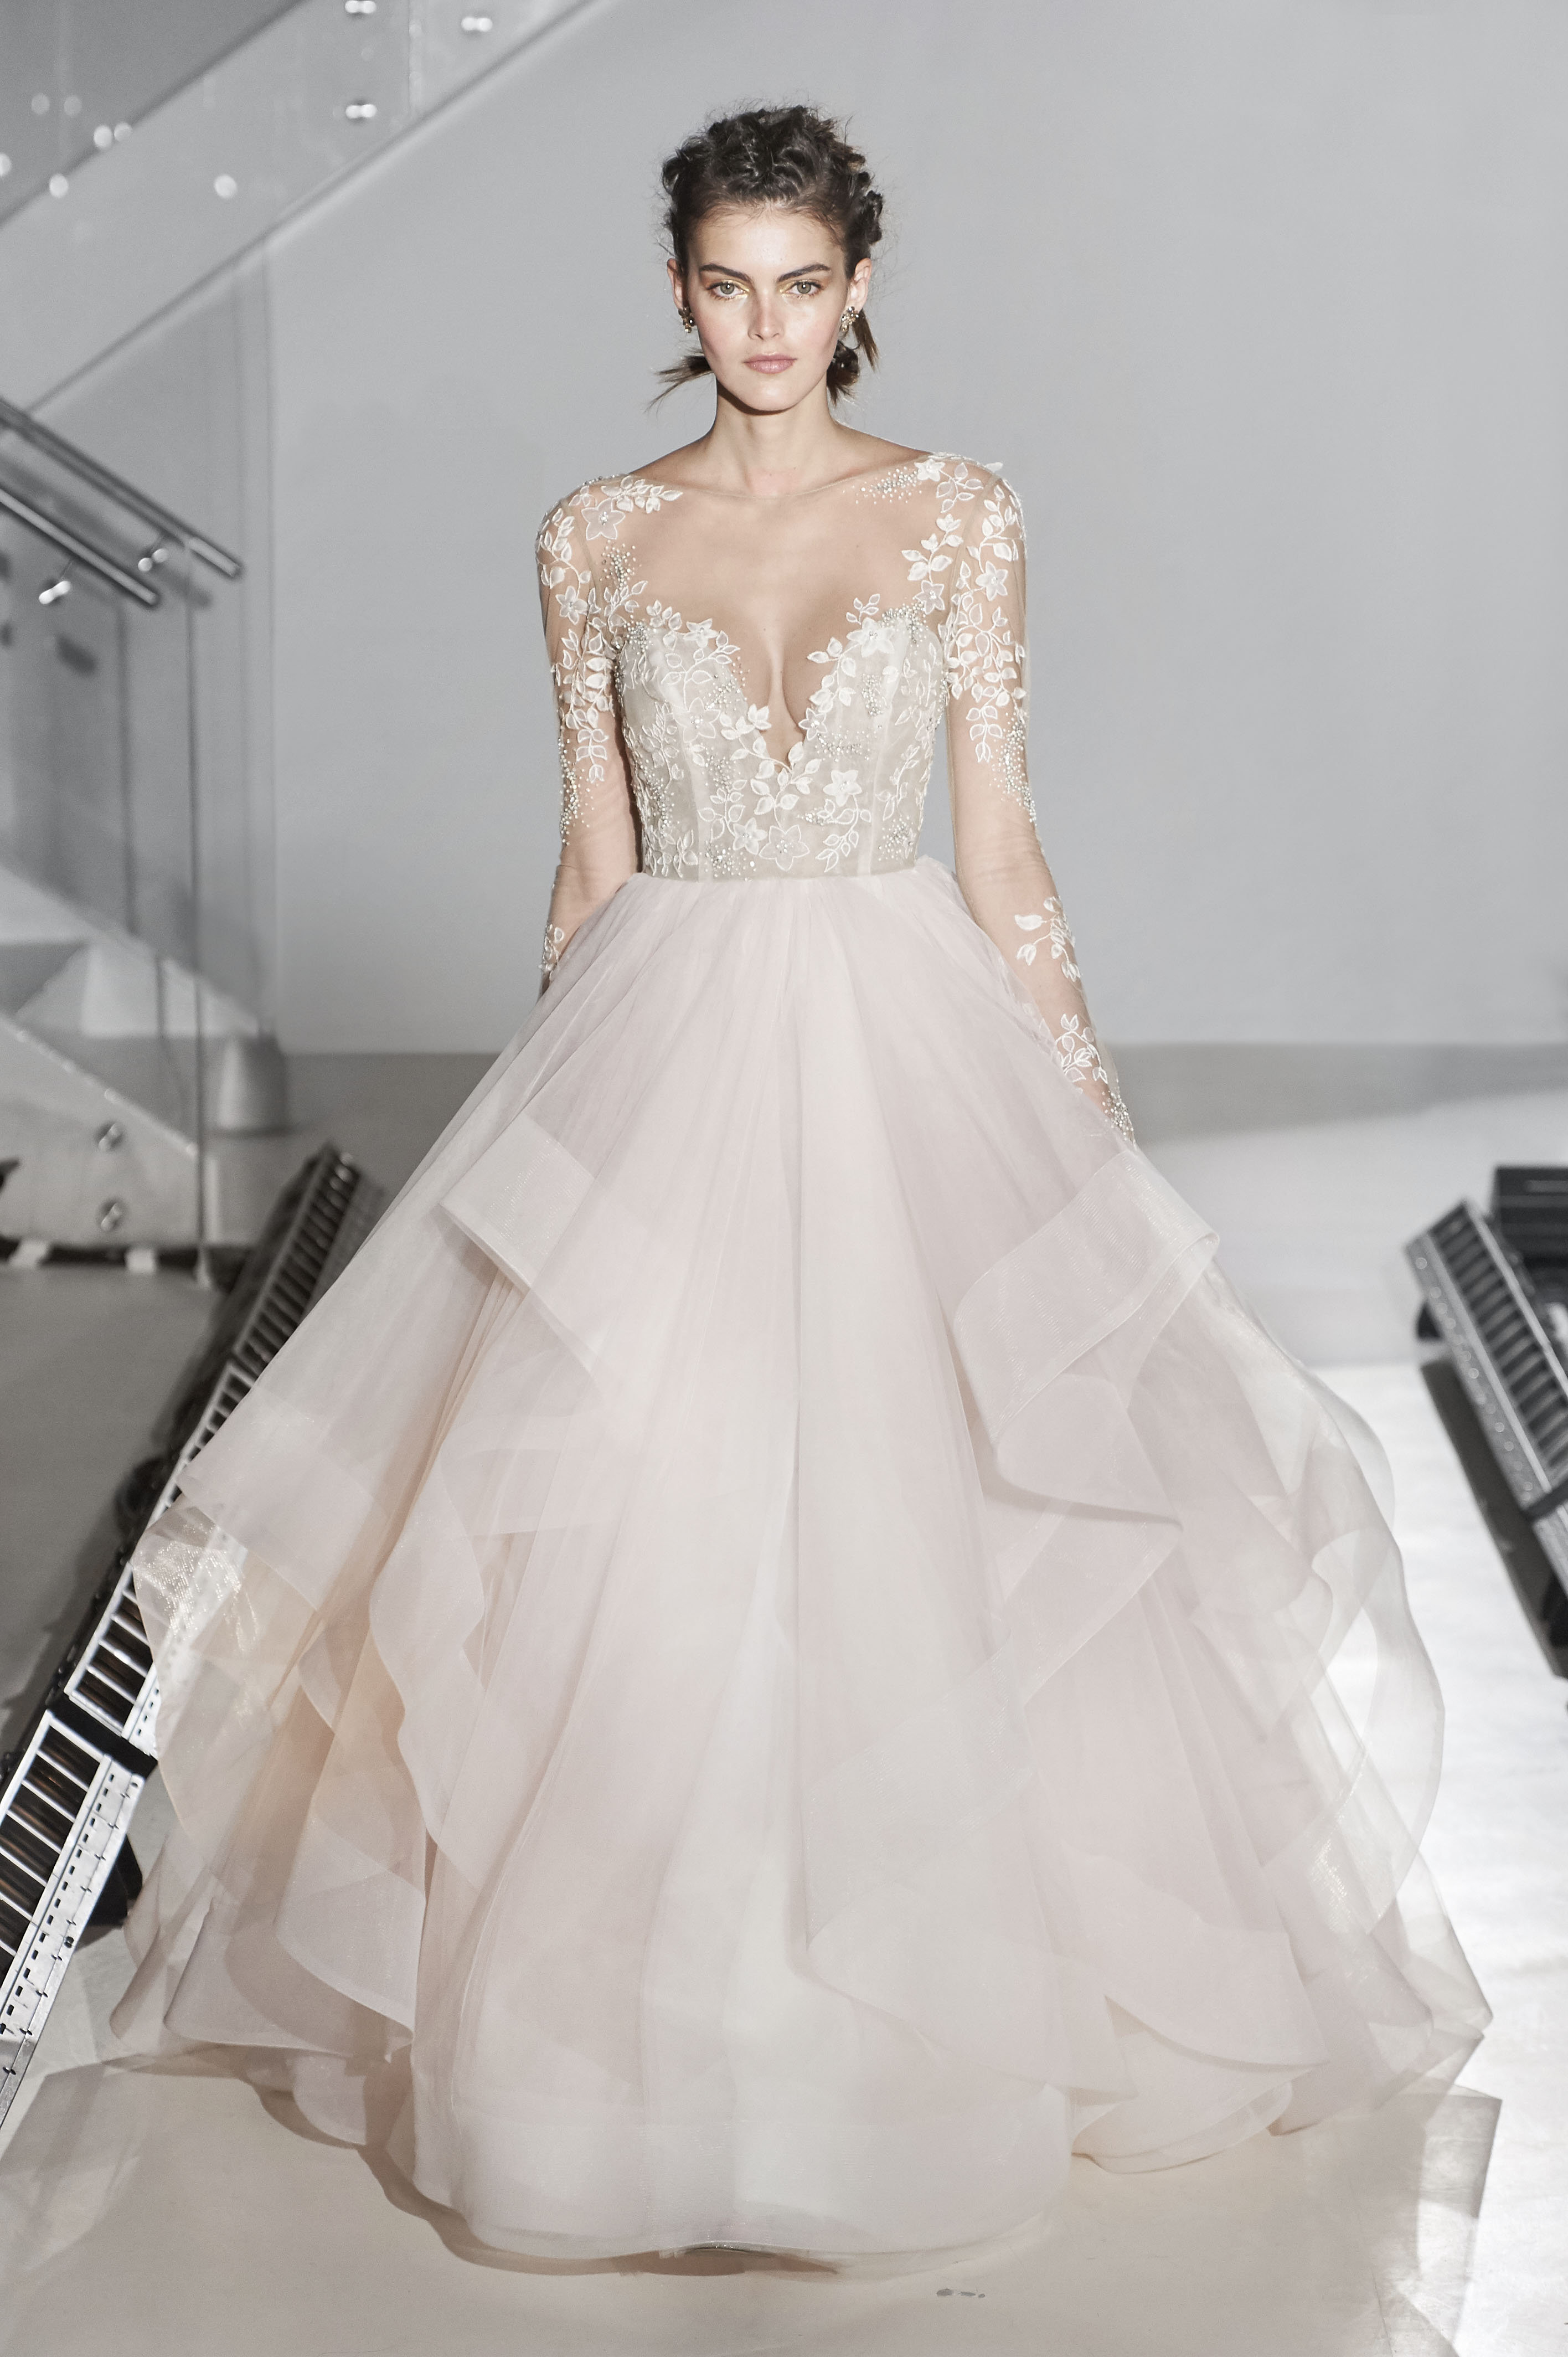 Hailey page wedding dress wedding dress ideas for Best website for wedding dresses